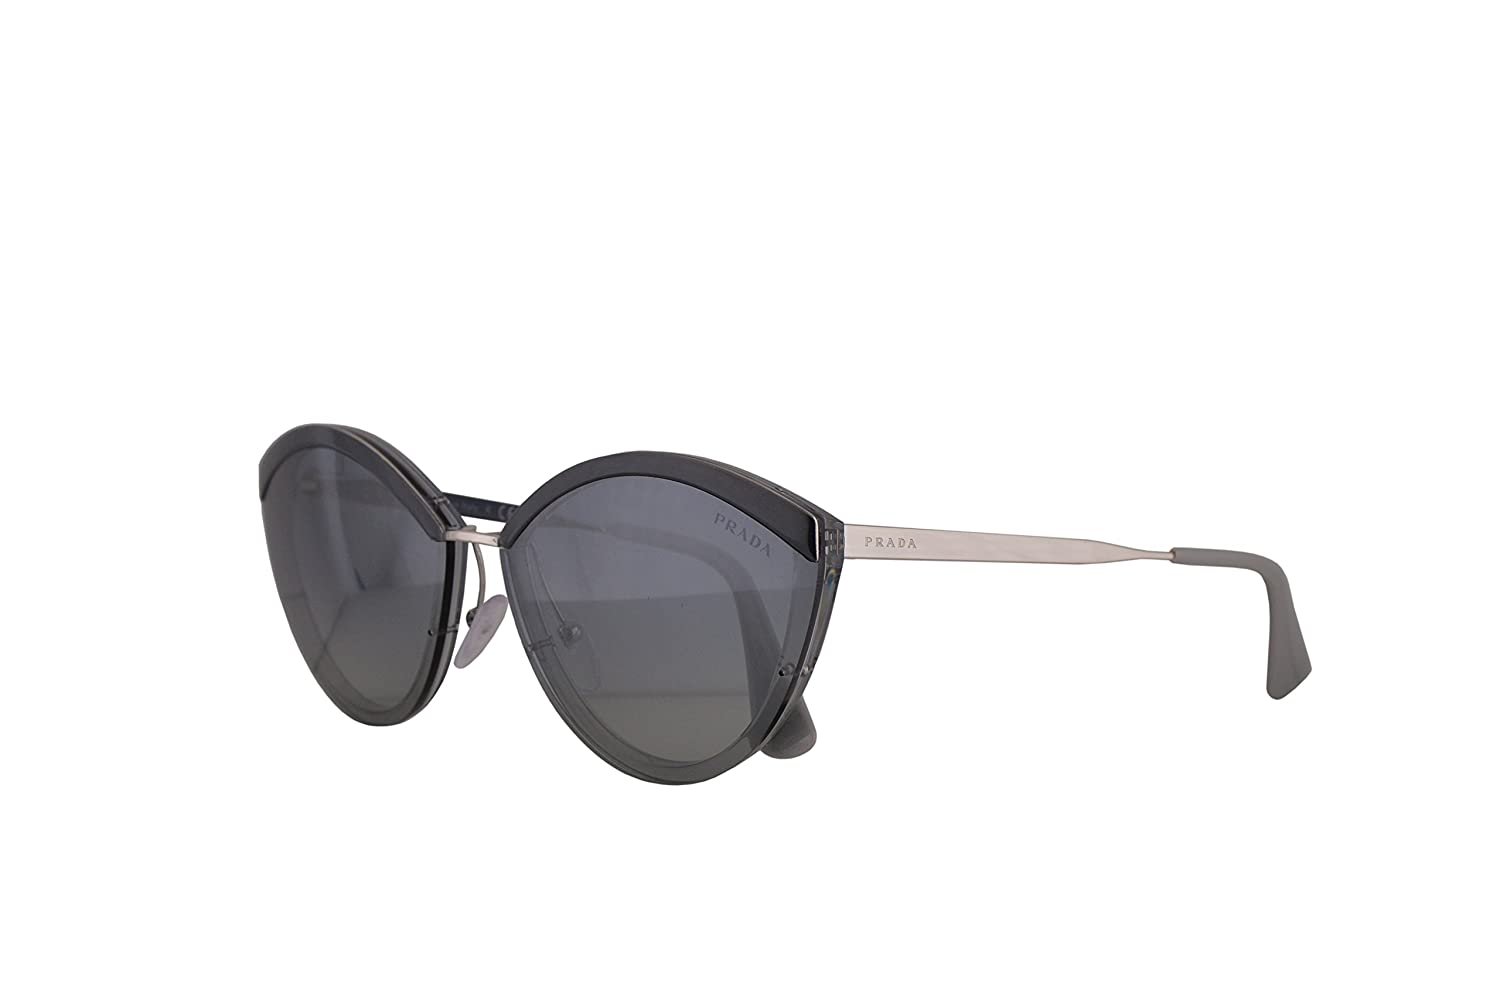 950147b2426 Amazon.com  Prada PR07US Sunglasses Grey w Grey Gradient Blue Mirror Silver  64mm Lens KI53A0 SPR07U PR 07US SPR 07U  Clothing